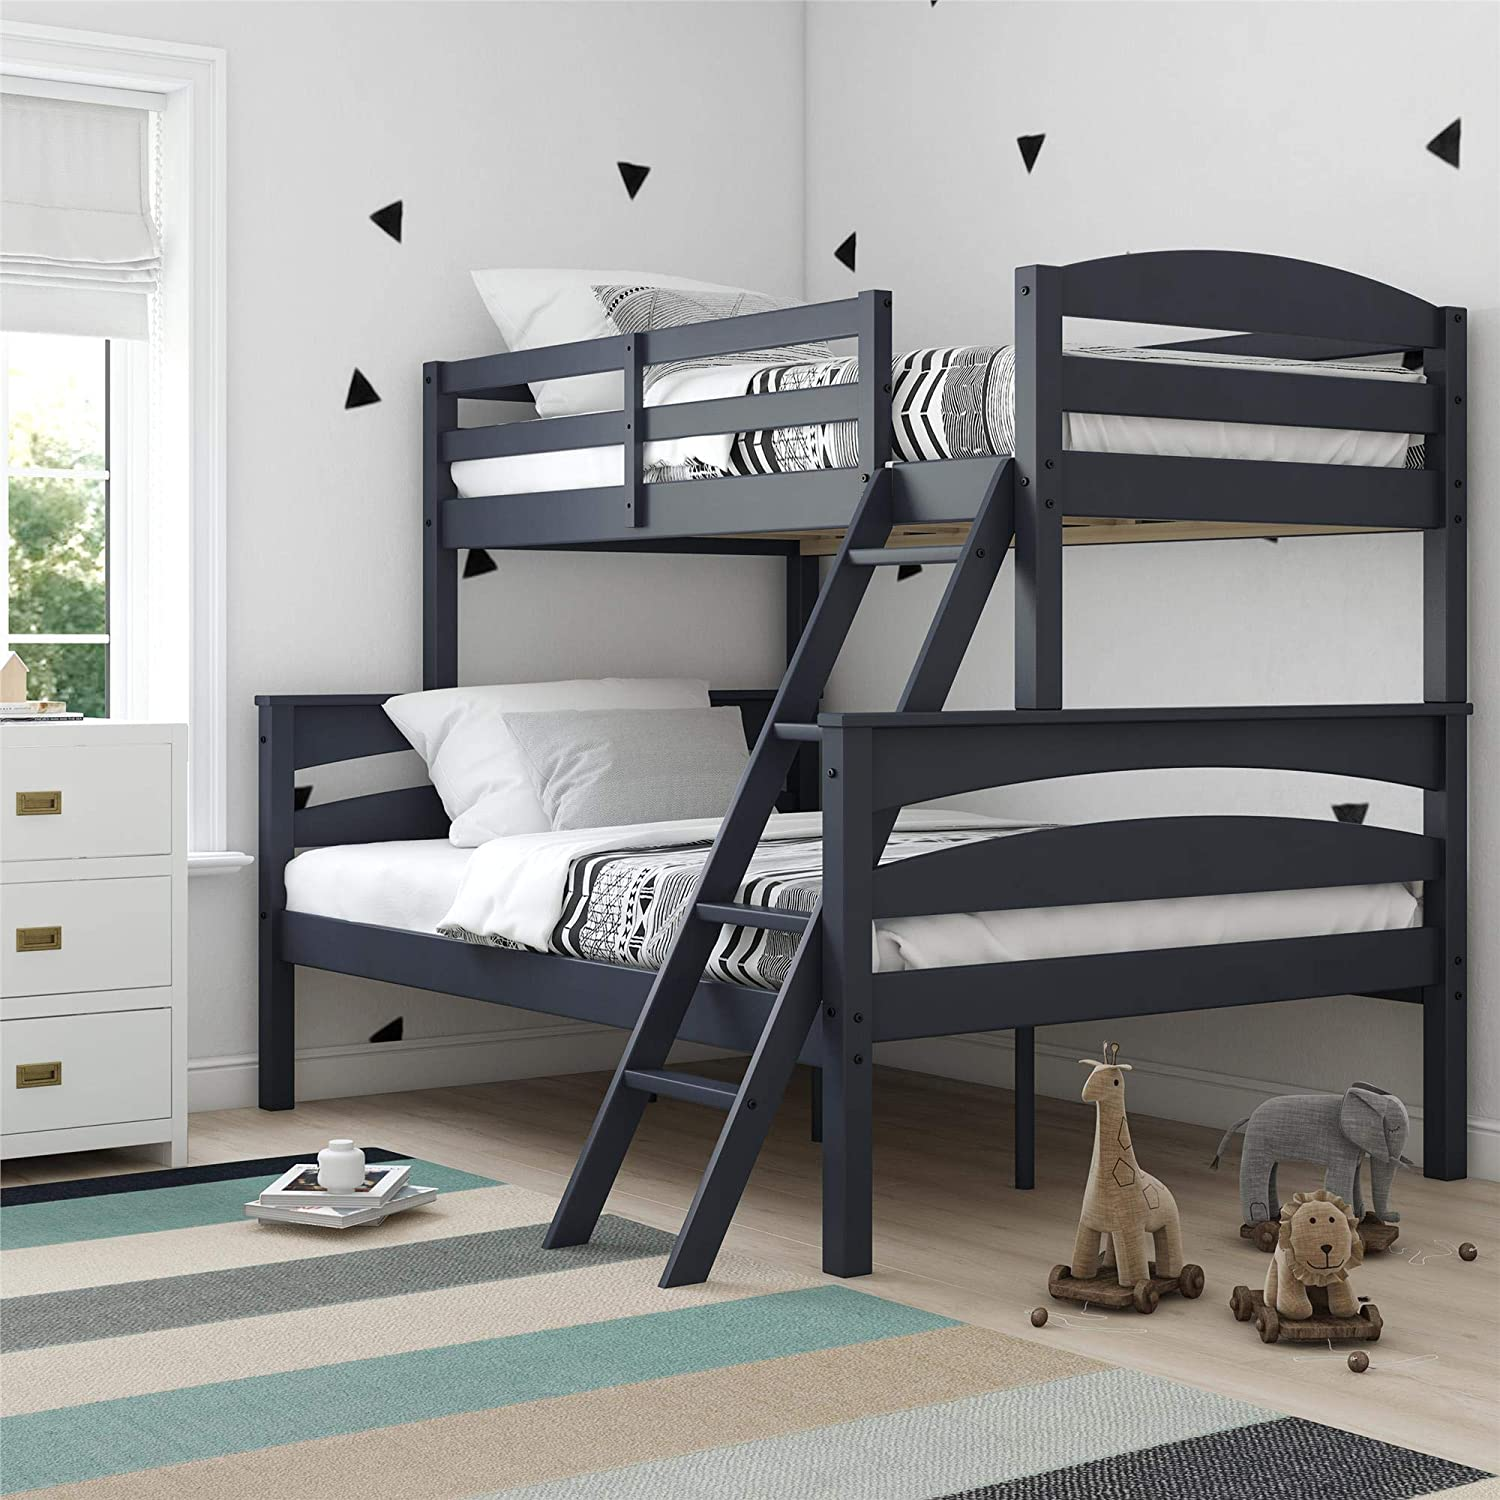 Dorel Living Twin over Full Bunk Bed